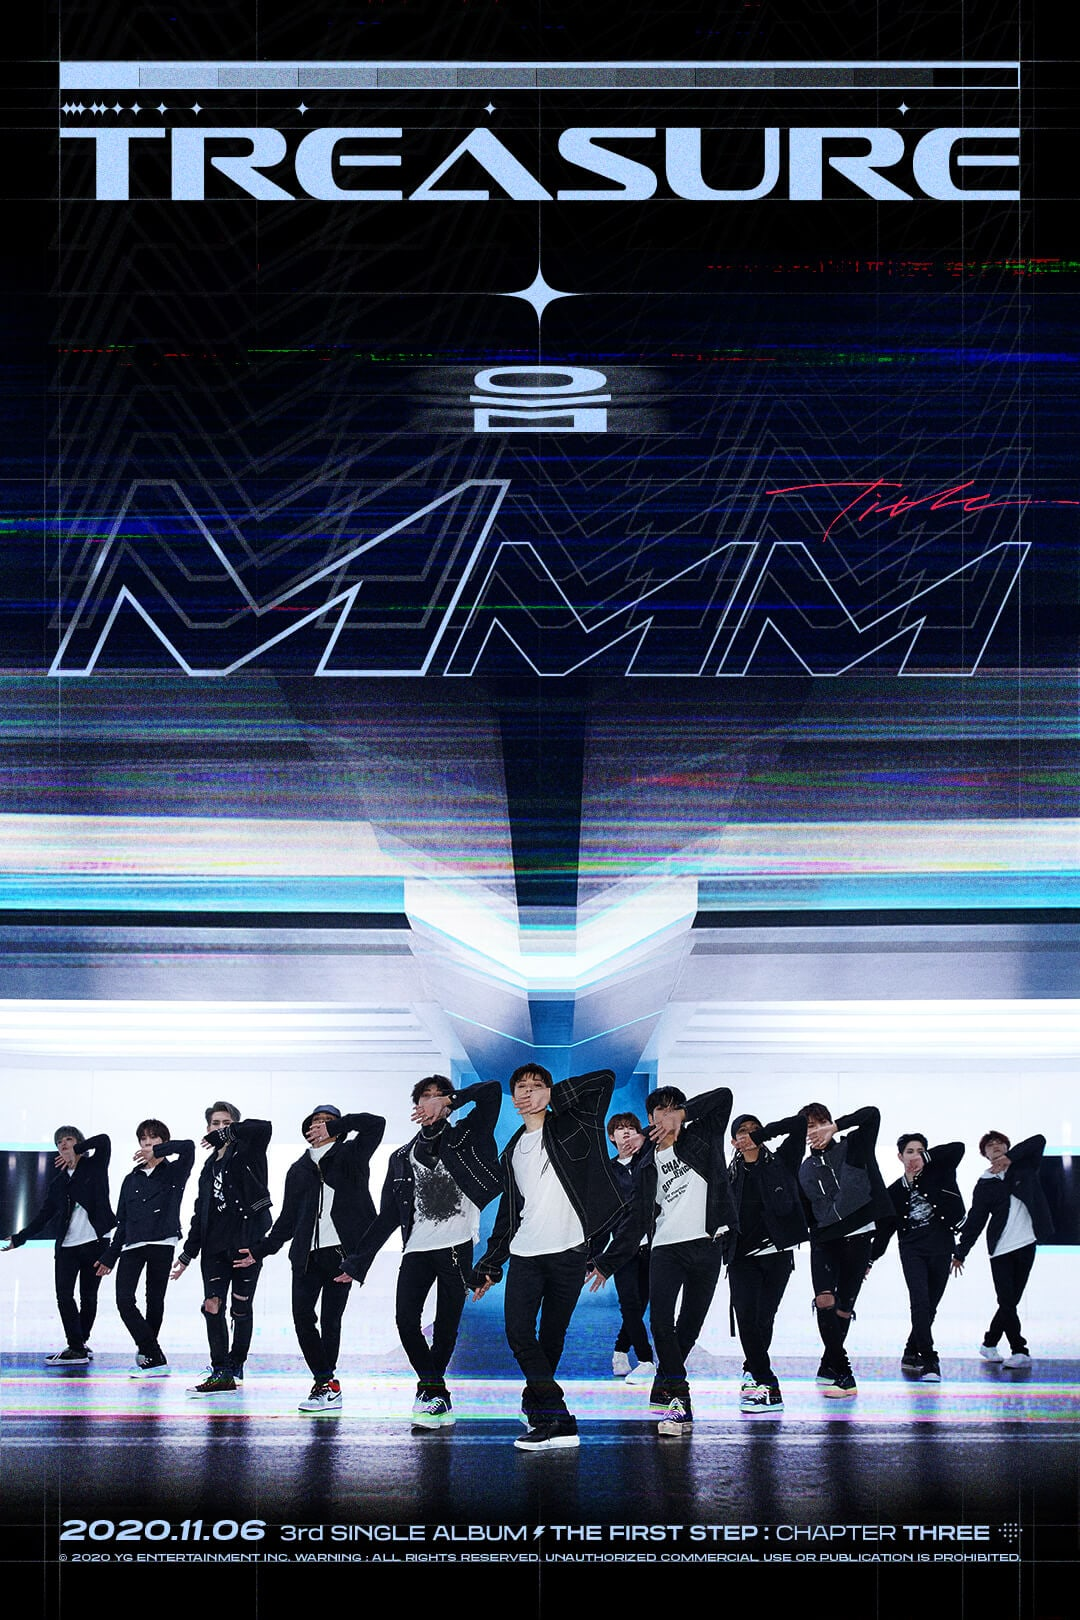 TREASURE talks about hopes for an MMM comeback